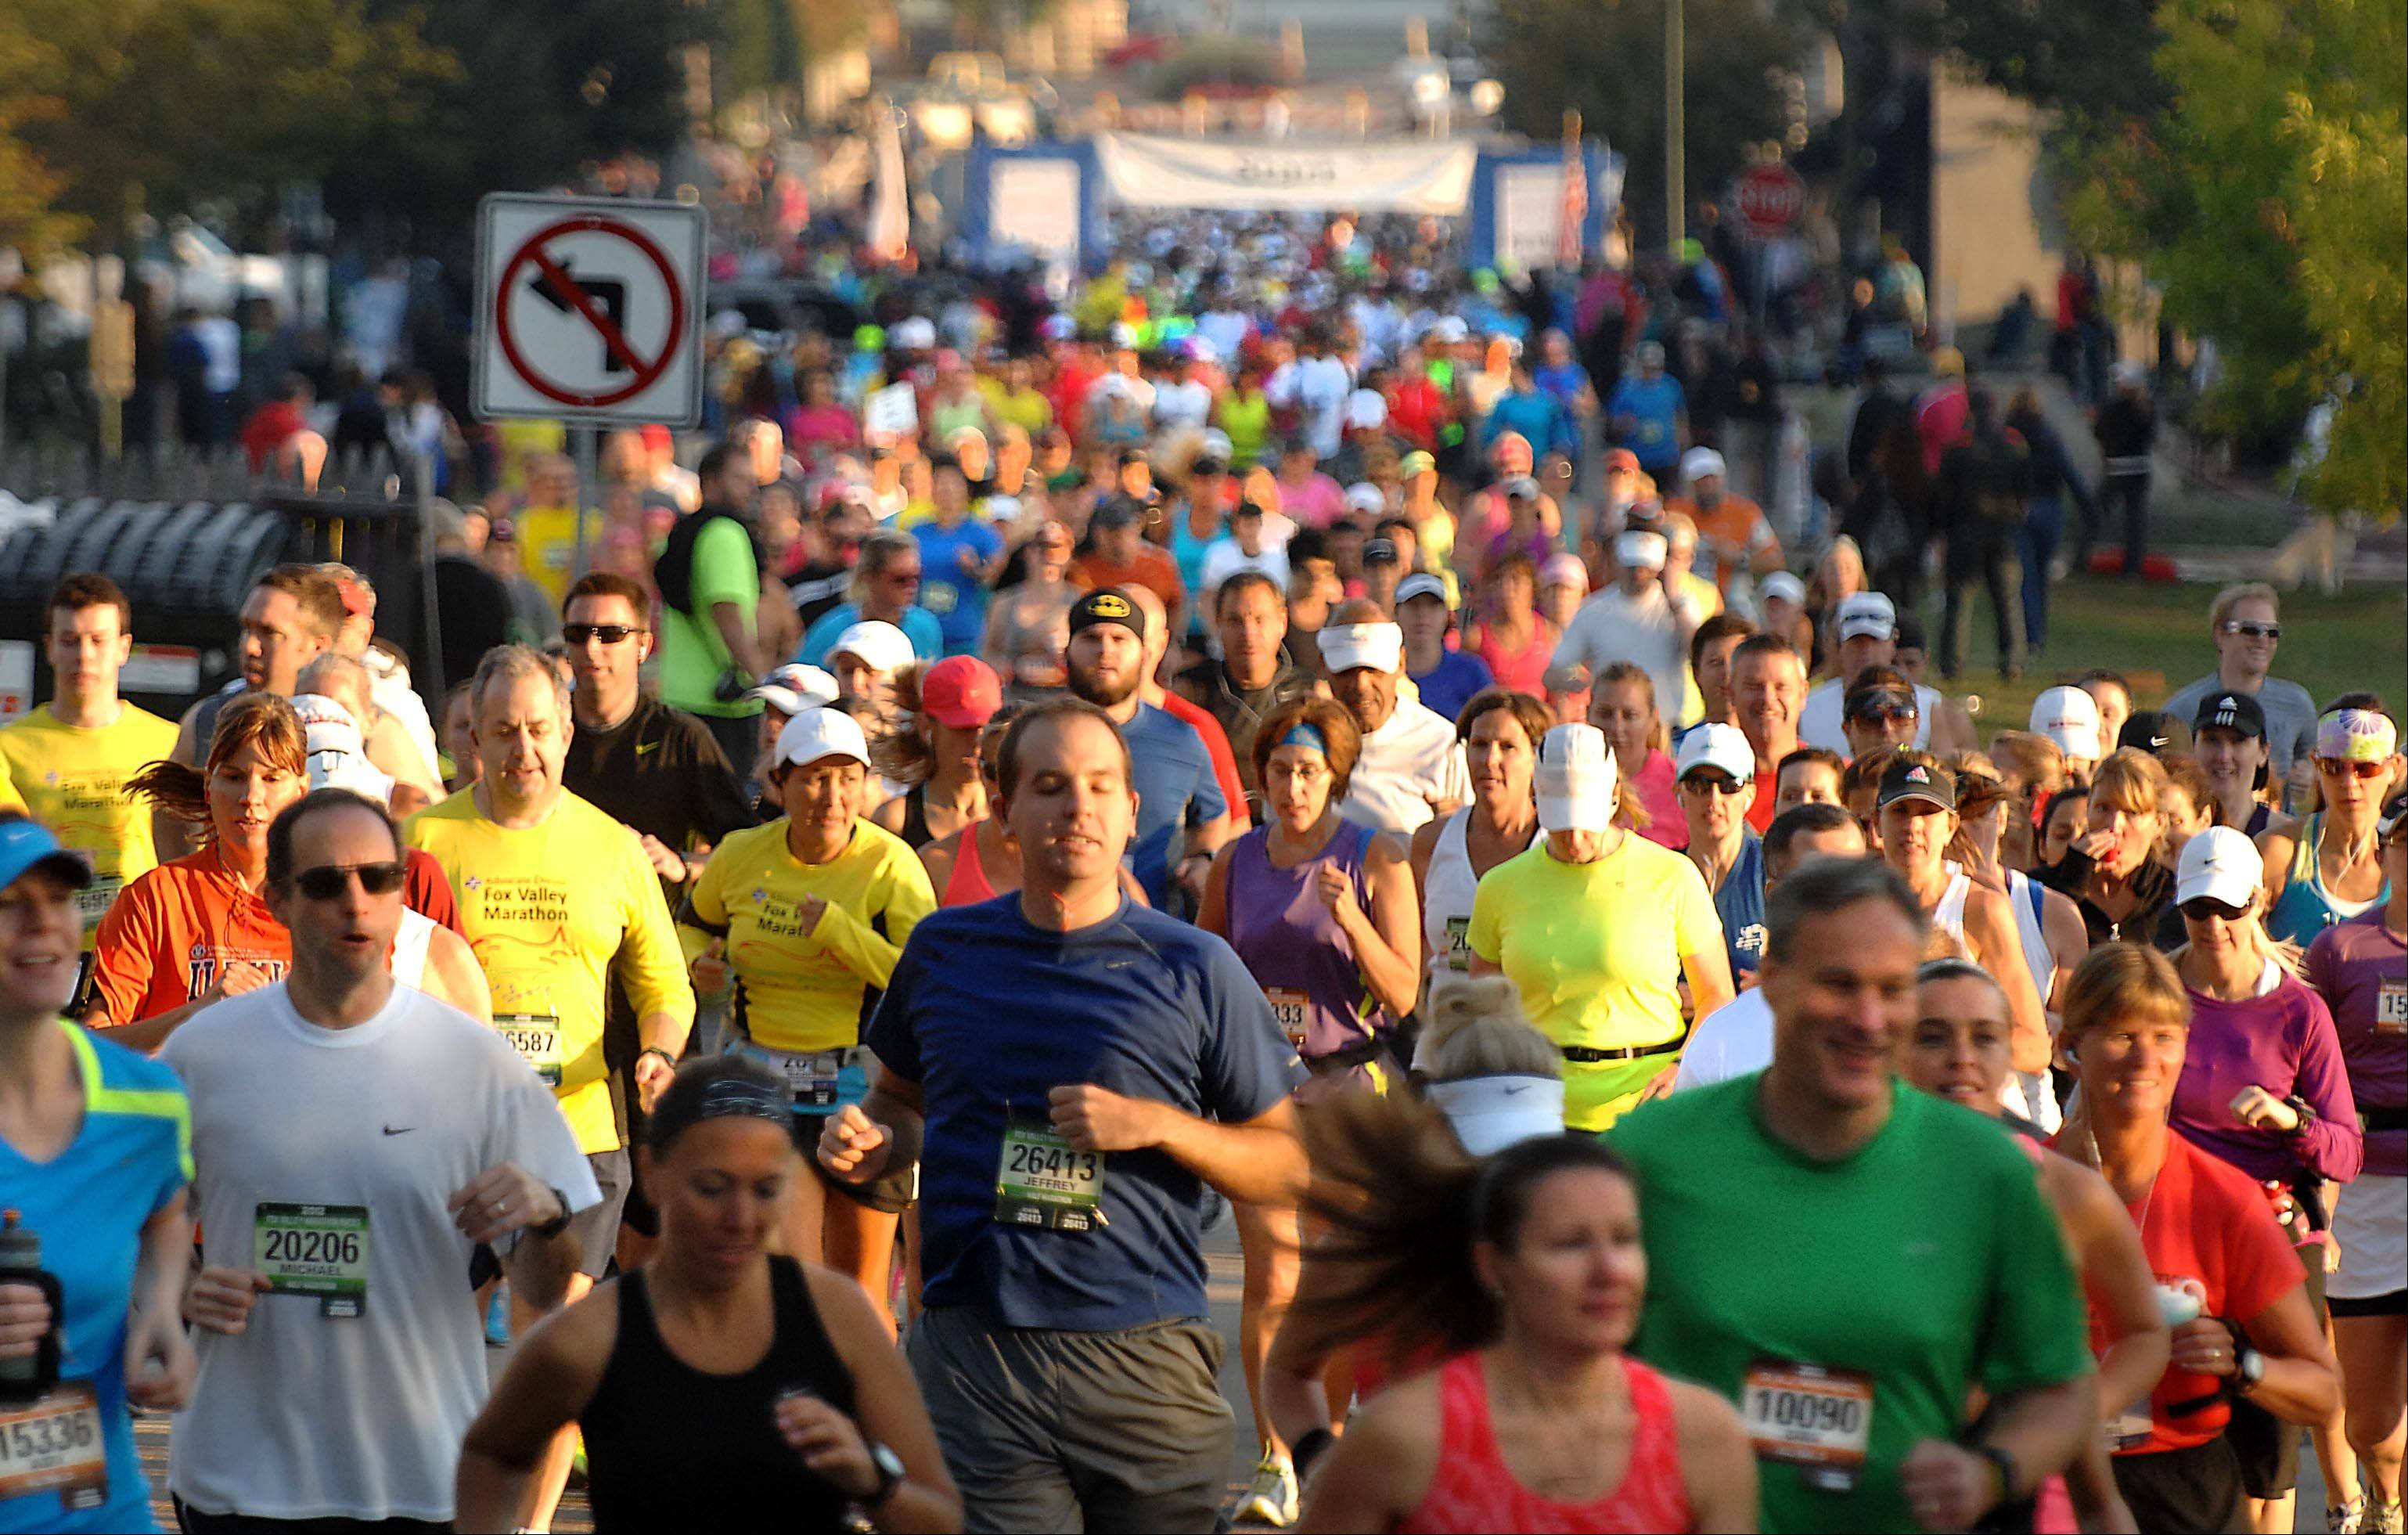 As many as 7,500 runners participated in last year�s Fox Valley Marathon. Organizer Bob Hackett said Naperville�s first marathon, to be held next November, will be capped at 4,000 runners.